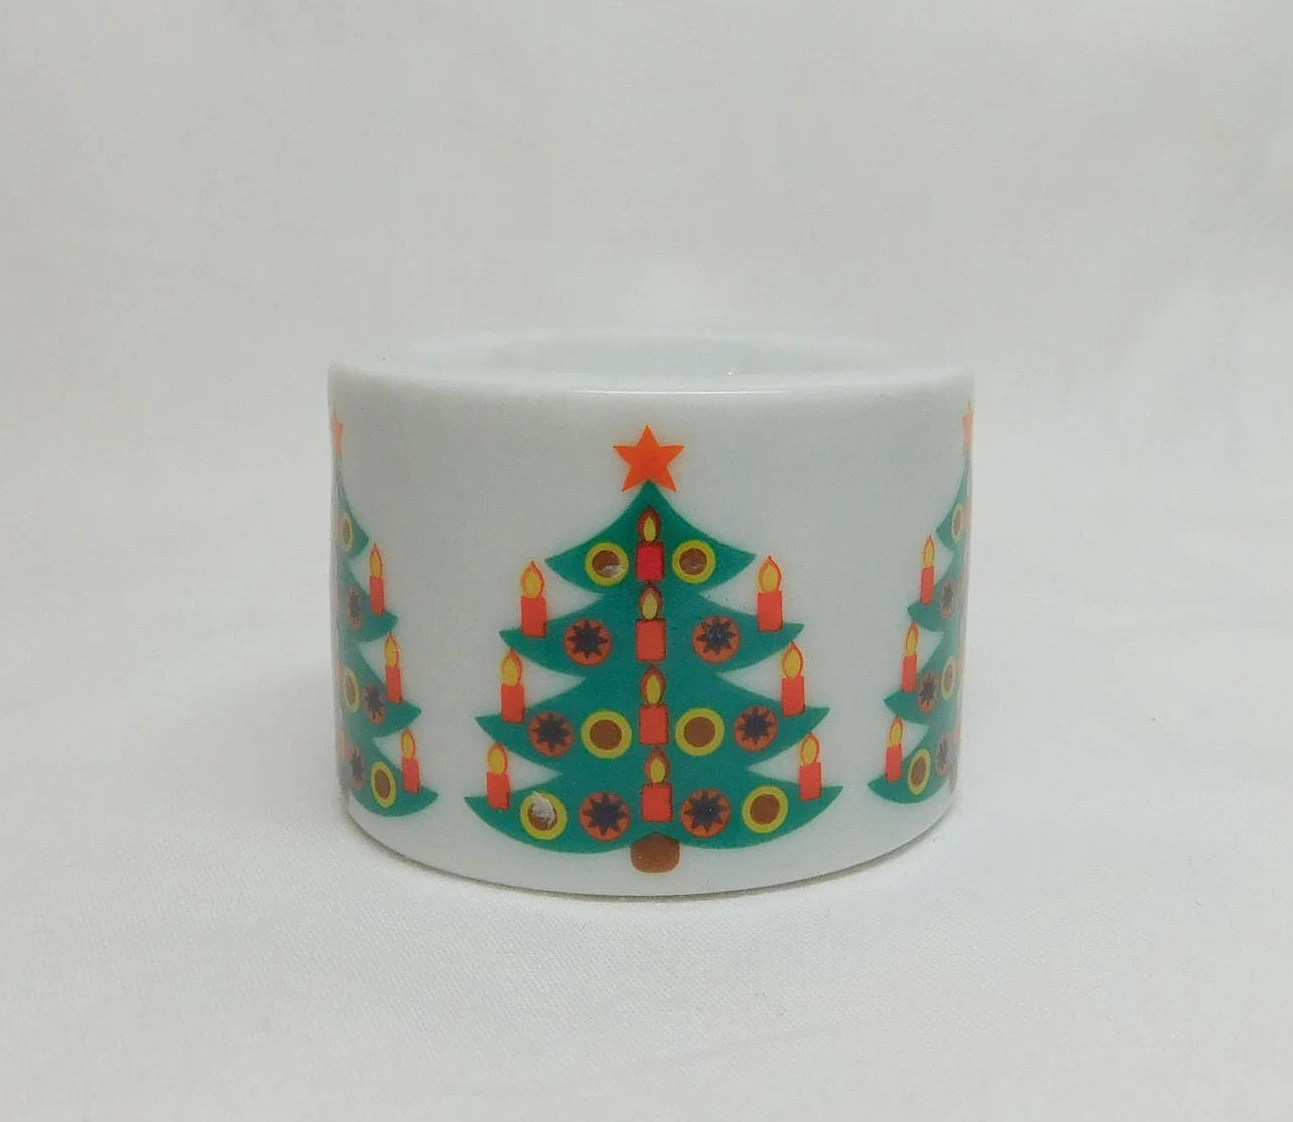 Mini Tannenbaum Vintage Funny Design W Germany Mini Round Ball Candle Holder Candleholder Christmas Tree Tannenbaum Holiday Green Tree Orange Star Candles